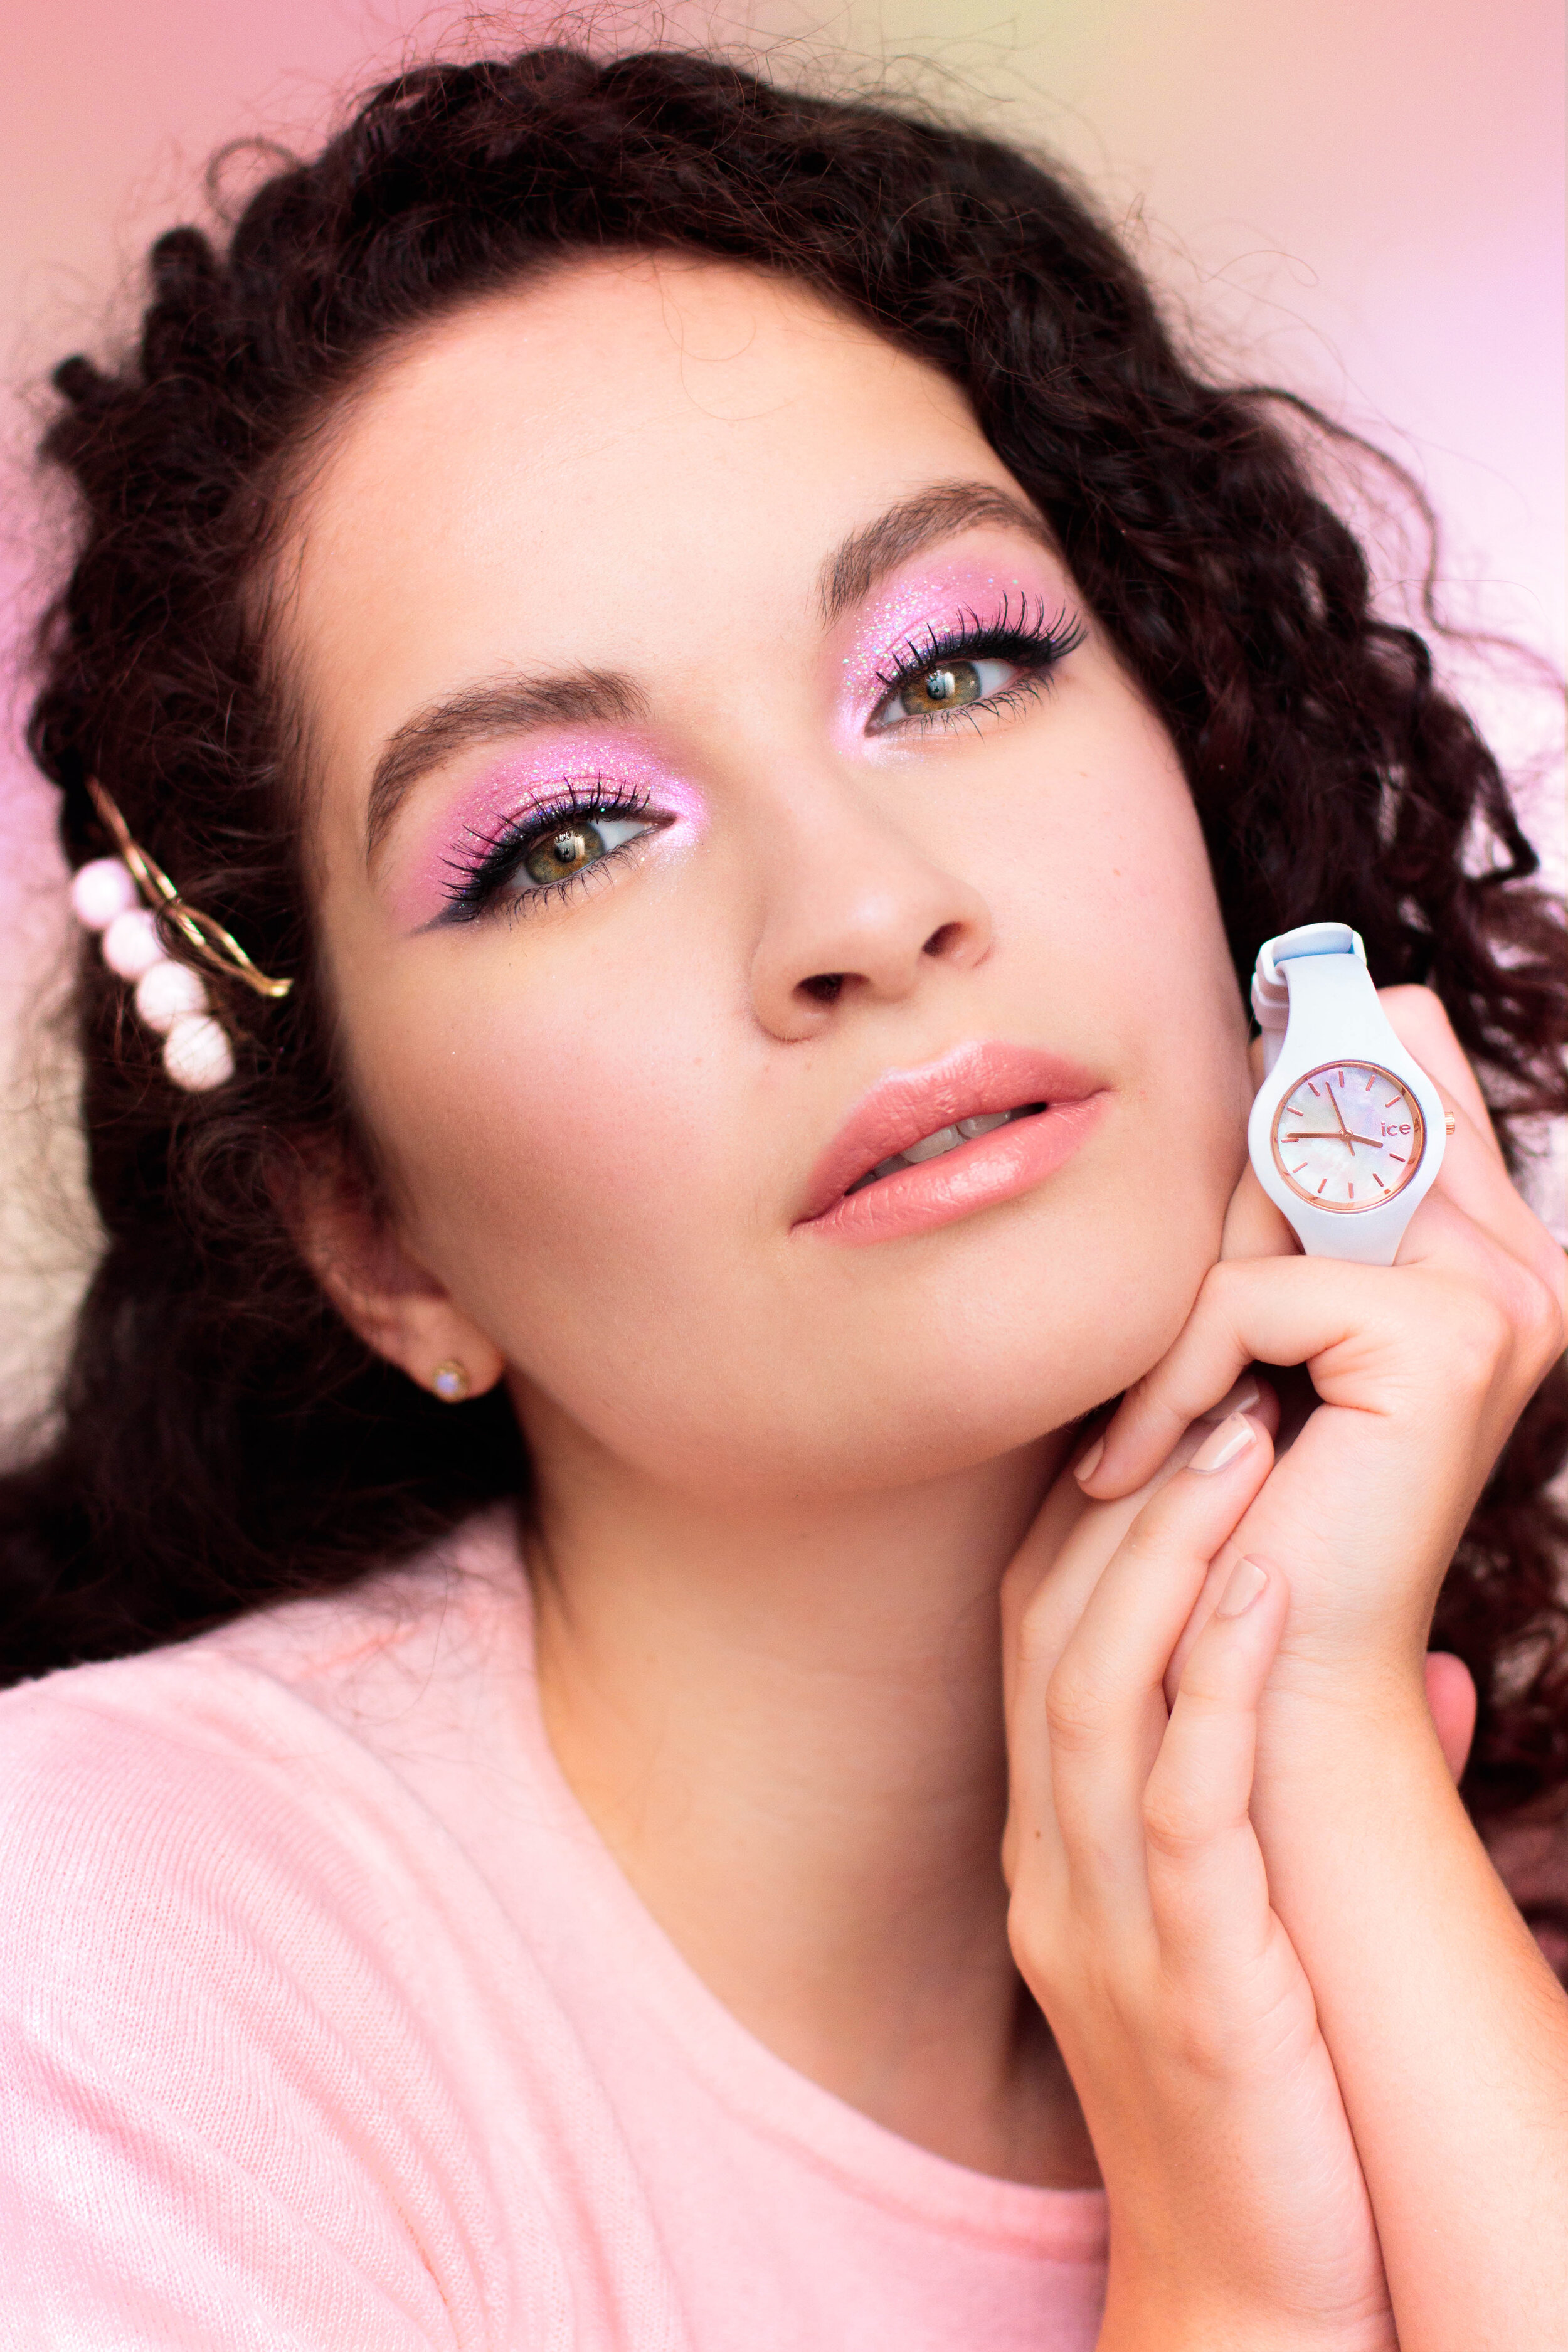 ice-watch-pearl-xs-white-makeup-pauuulette-3.jpg